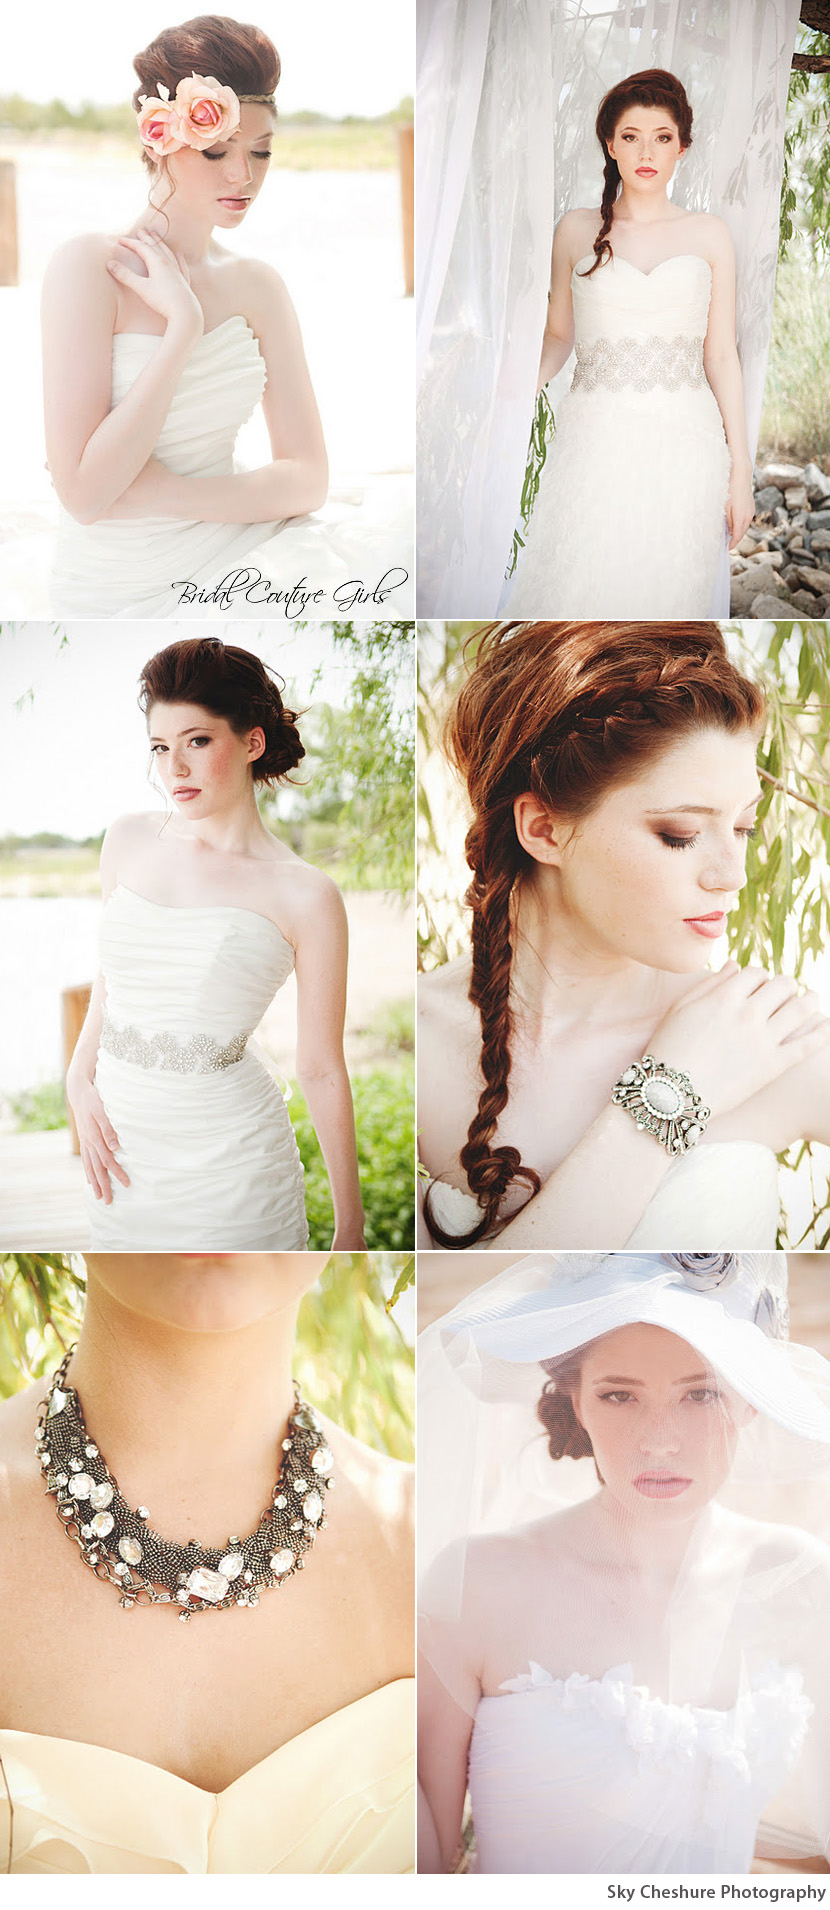 Oklahoma wedding accessories by Bridal Couture Girls